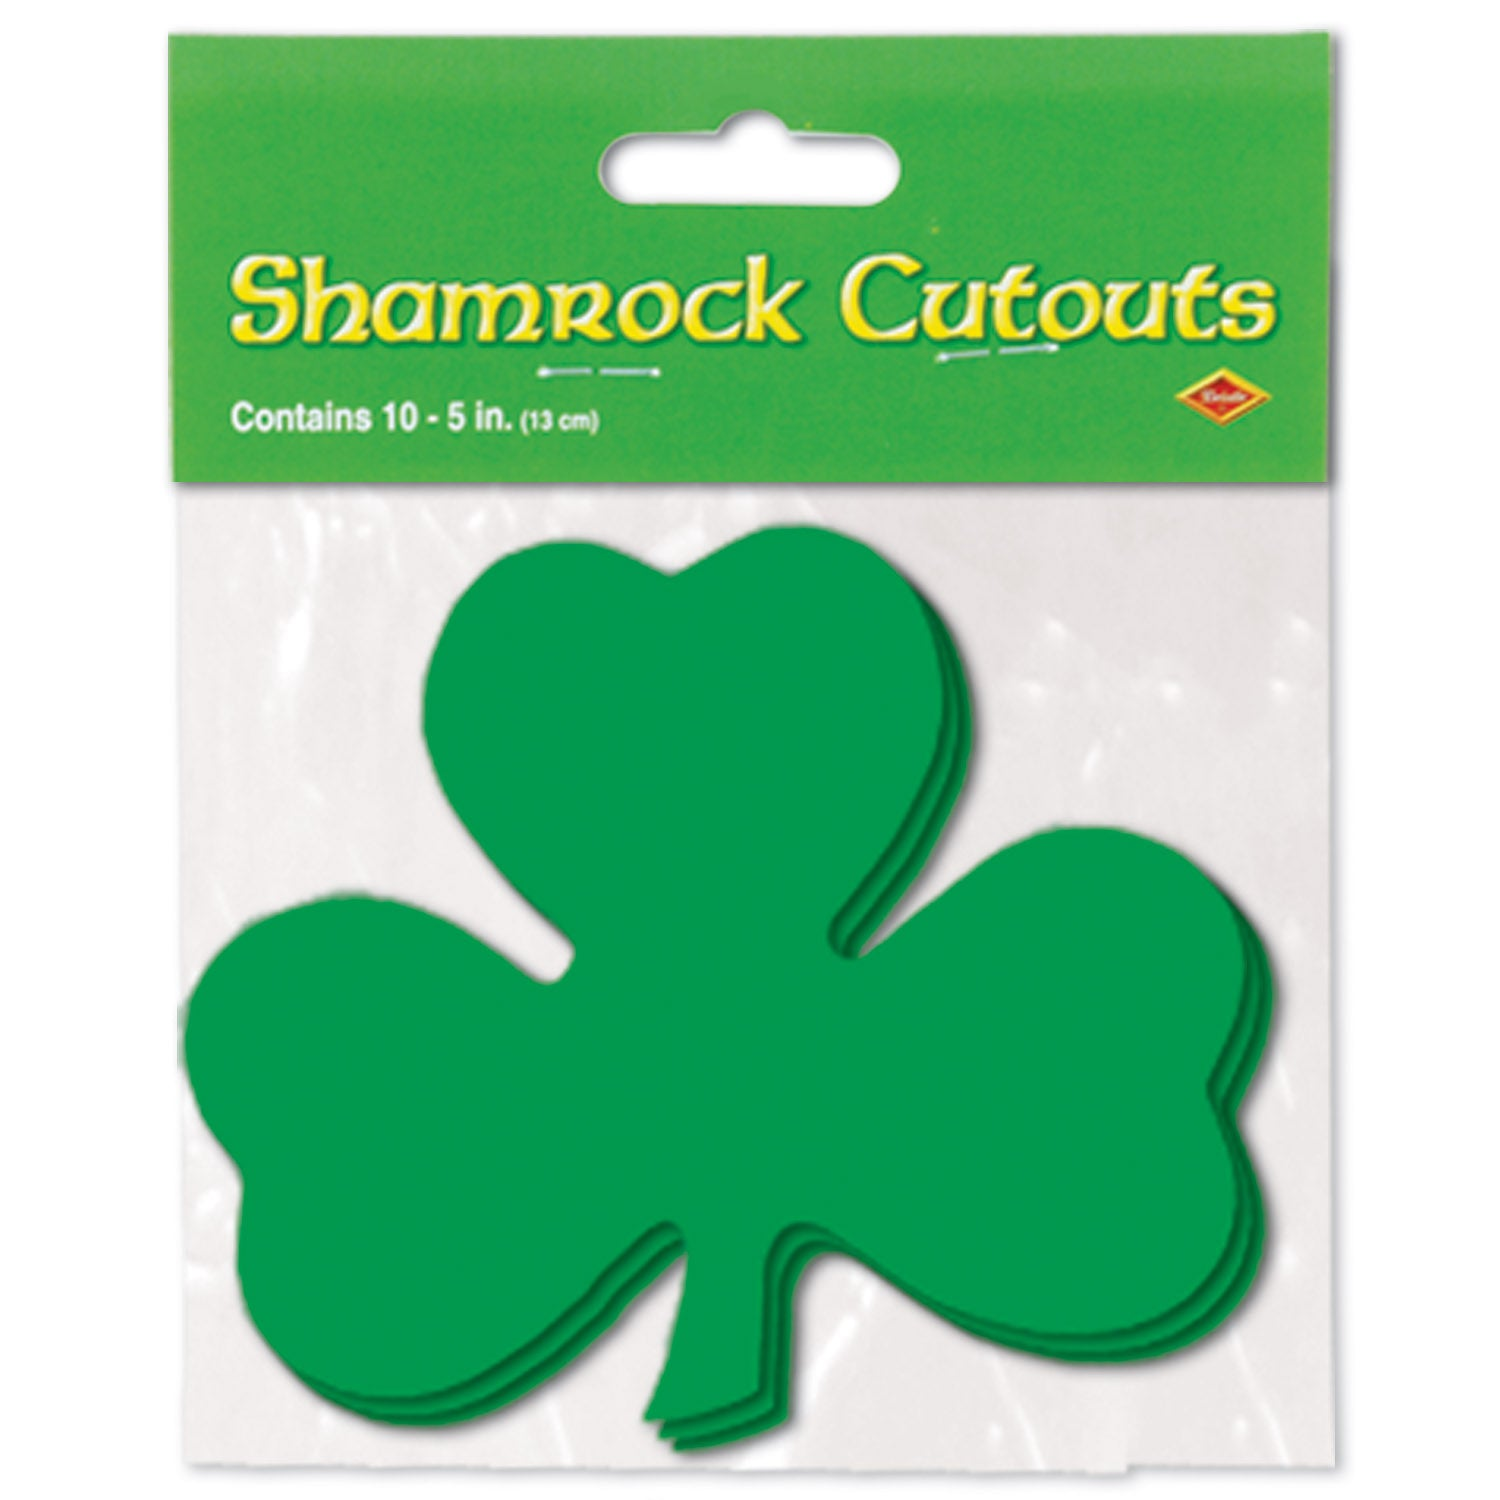 Packaged Printed Shamrock Cutouts (10/Pkg) by Beistle - St. Patricks Day Theme Decorations